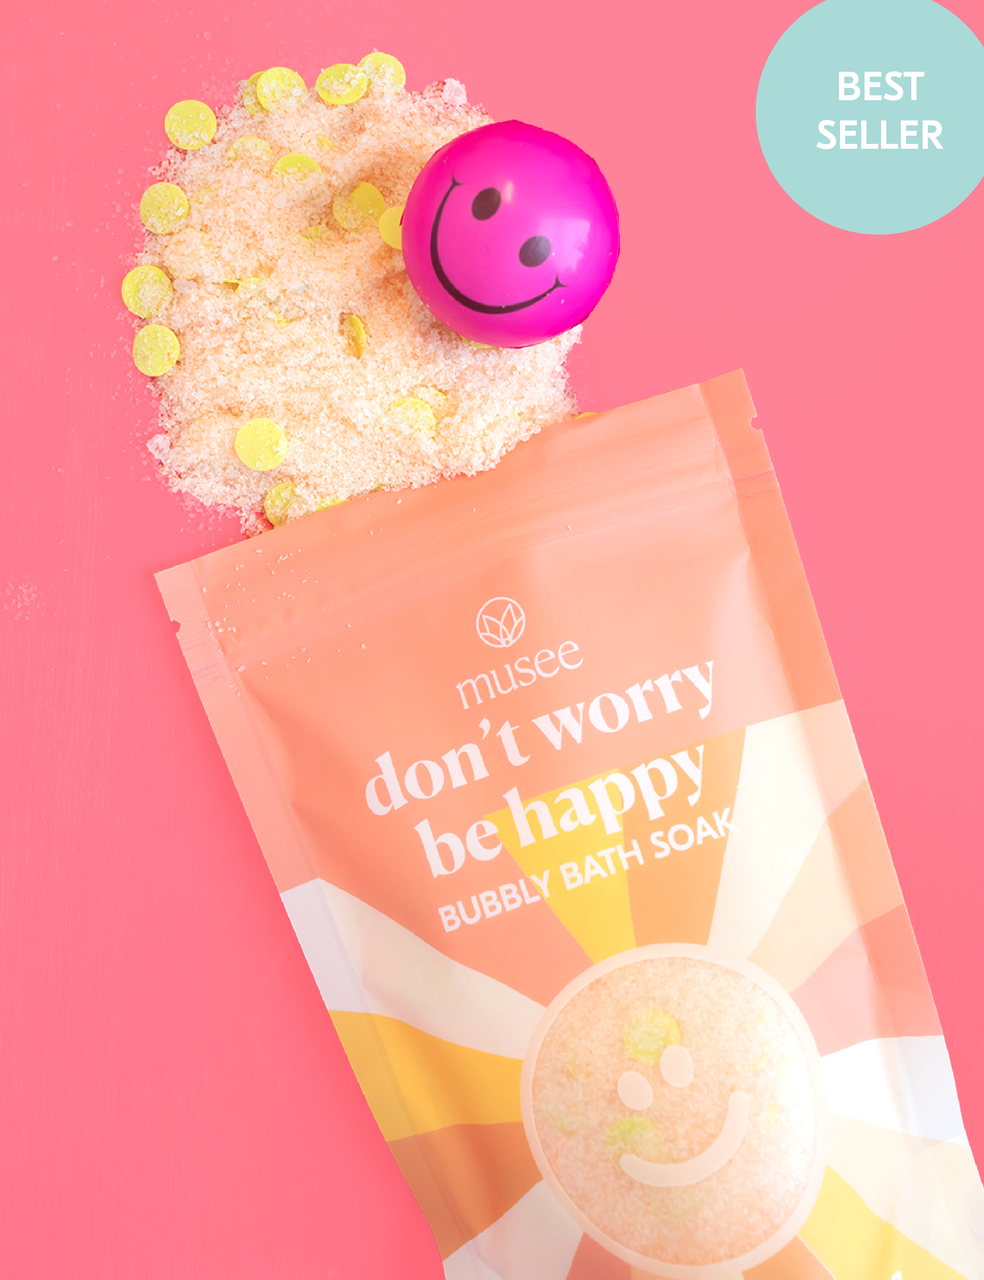 Musee Don't Worry Be Happy Bubbly Bath Soak